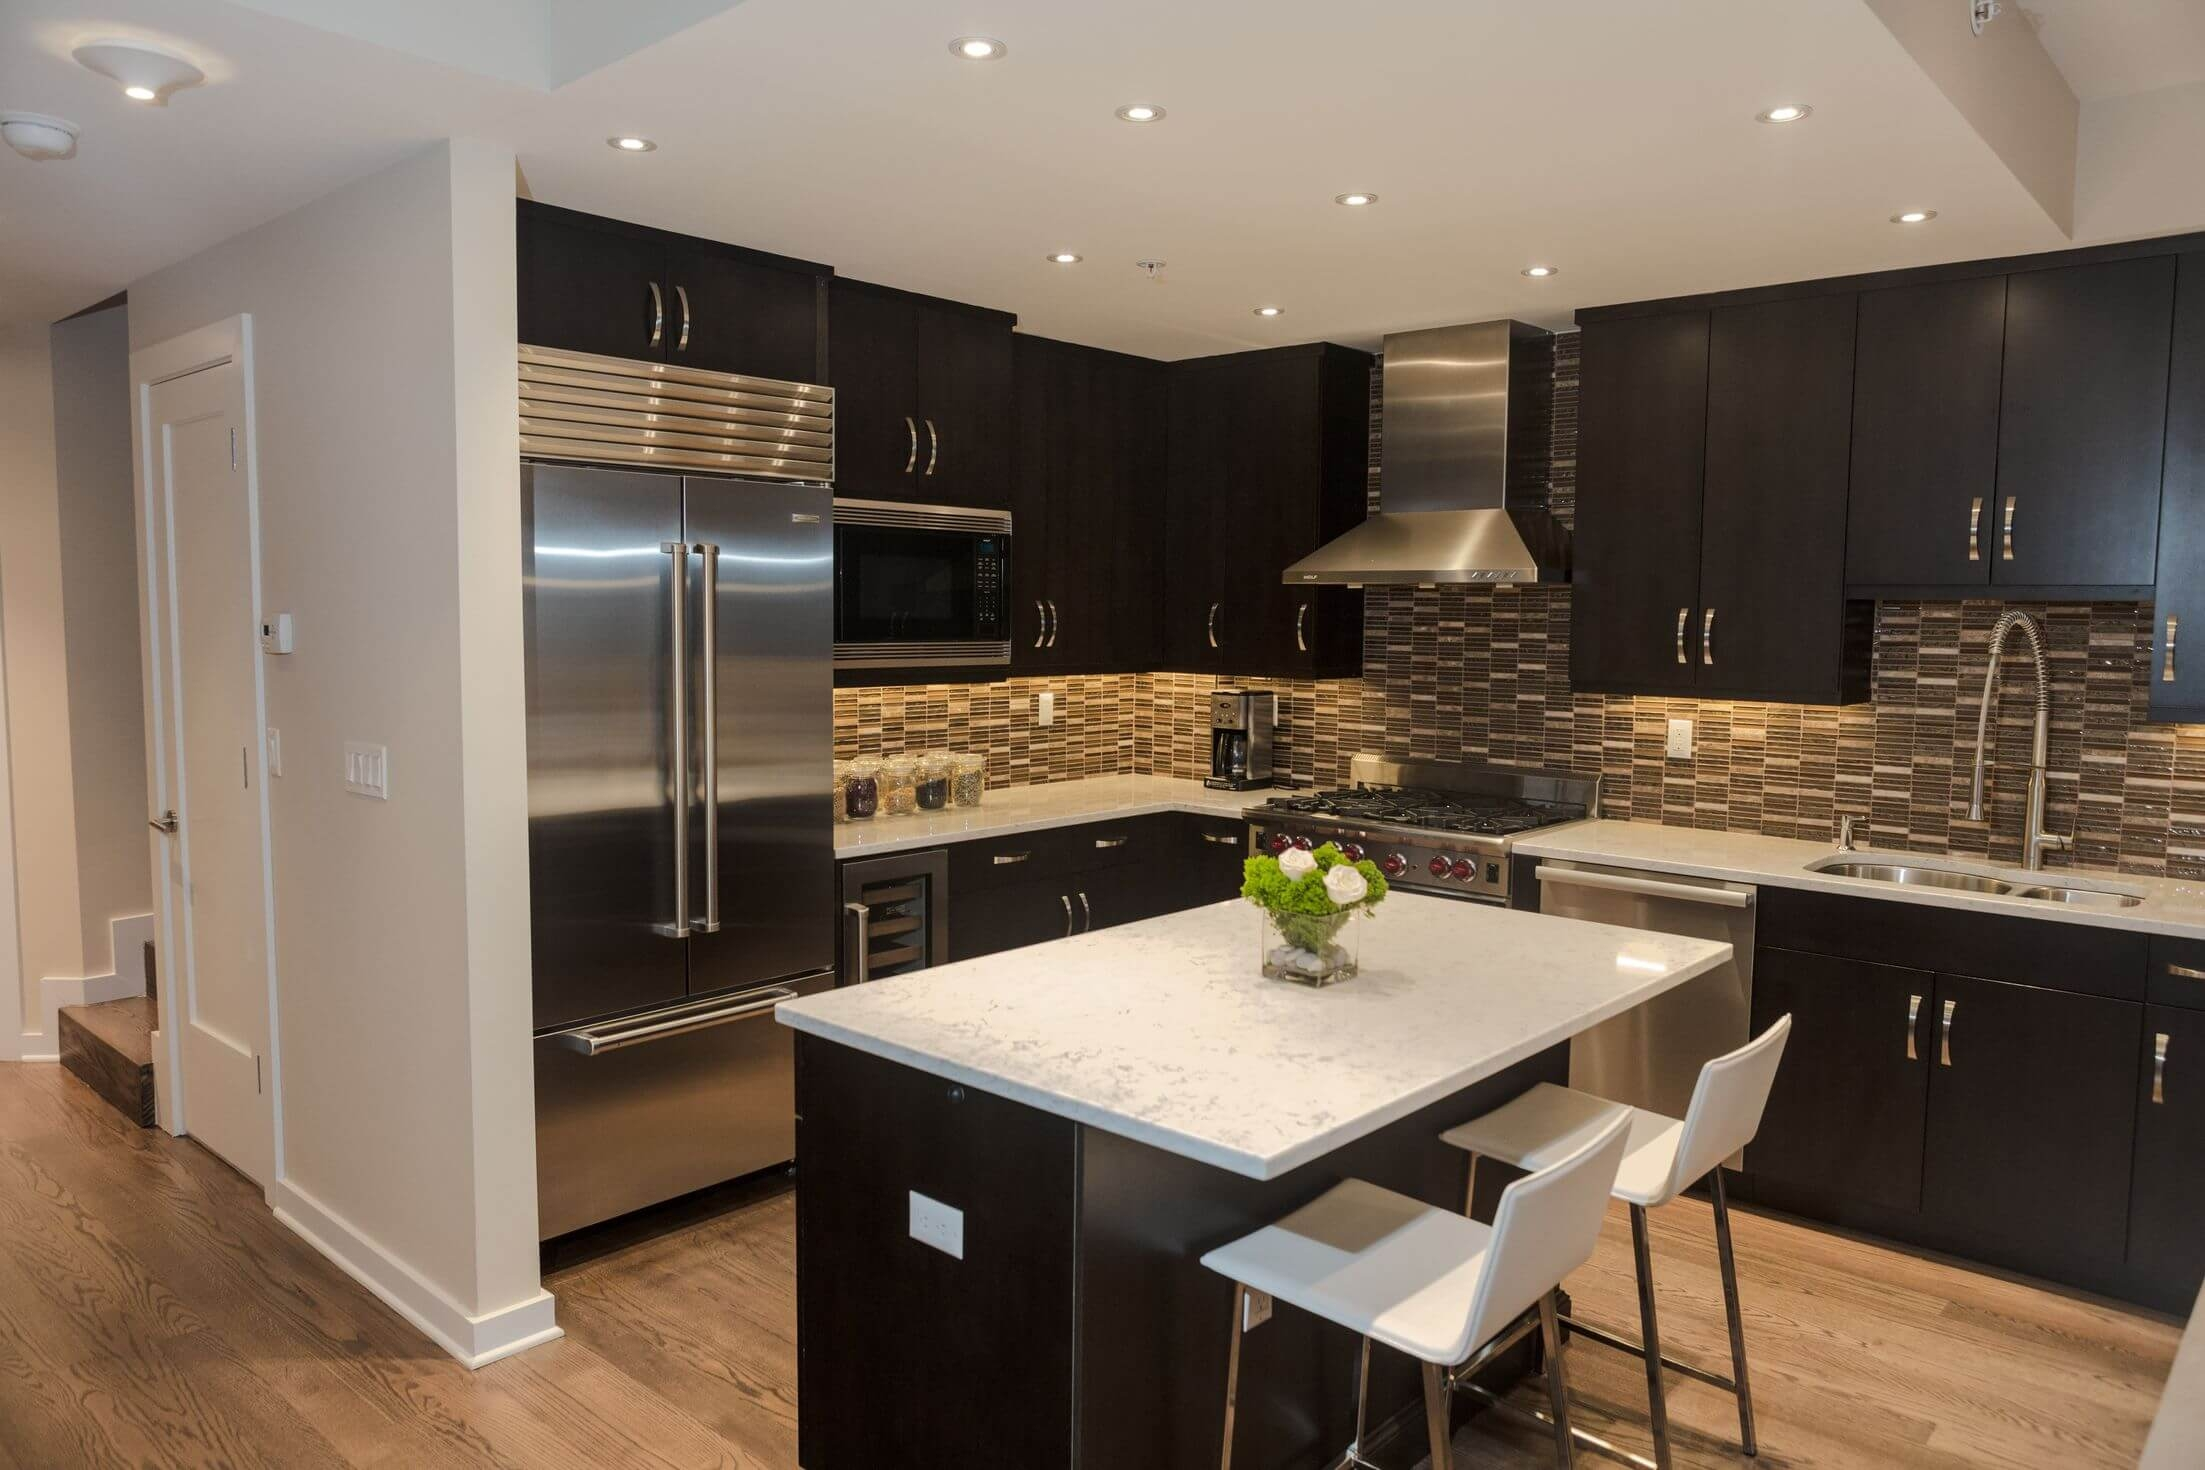 Countertops For Black Kitchen Cabinets2205 X 1470